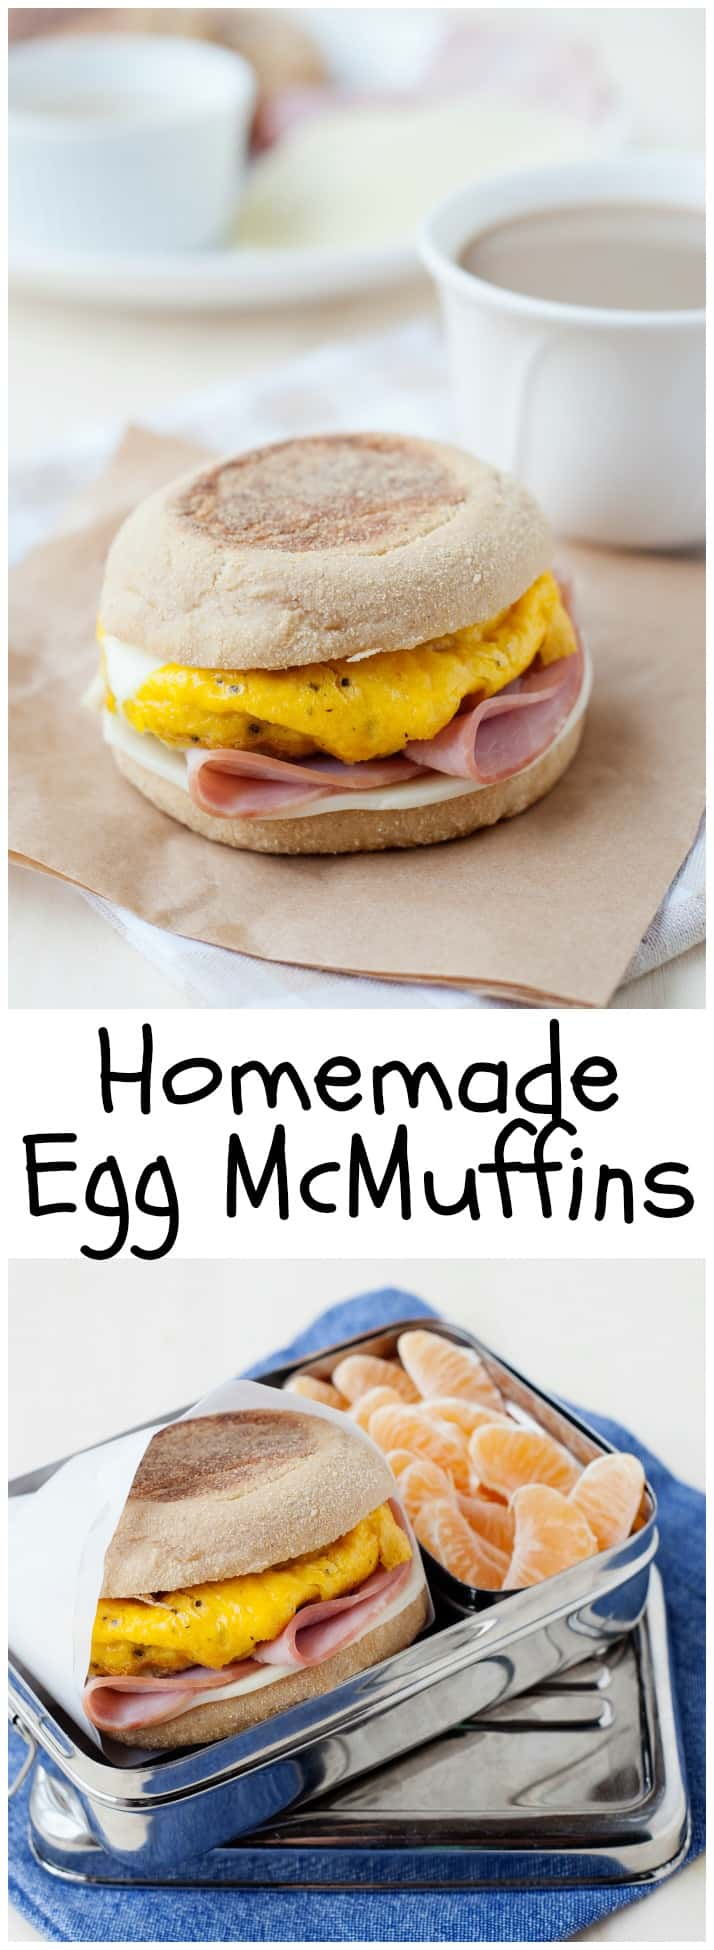 These homemade English Muffin Breakfast Sandwiches are a breeze to make and can be frozen for a quick portable breakfast! How-to video included.